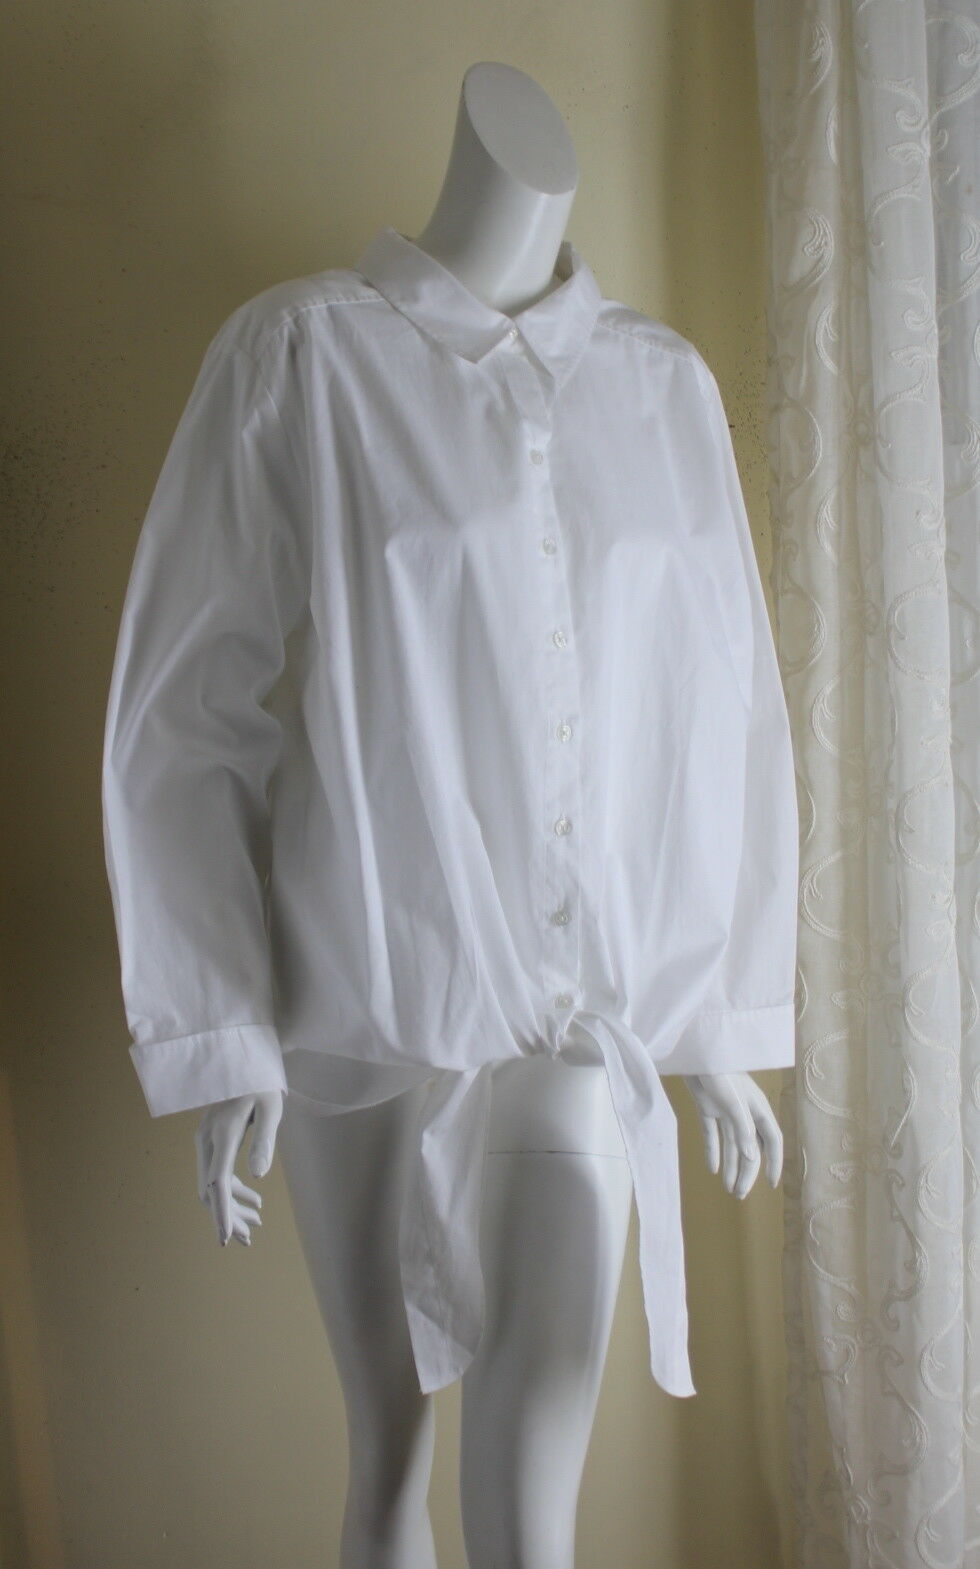 Roman's -S 26W 3X -The Perfect - Weiß Cotton French Tie Dress Shirt Tunic Top